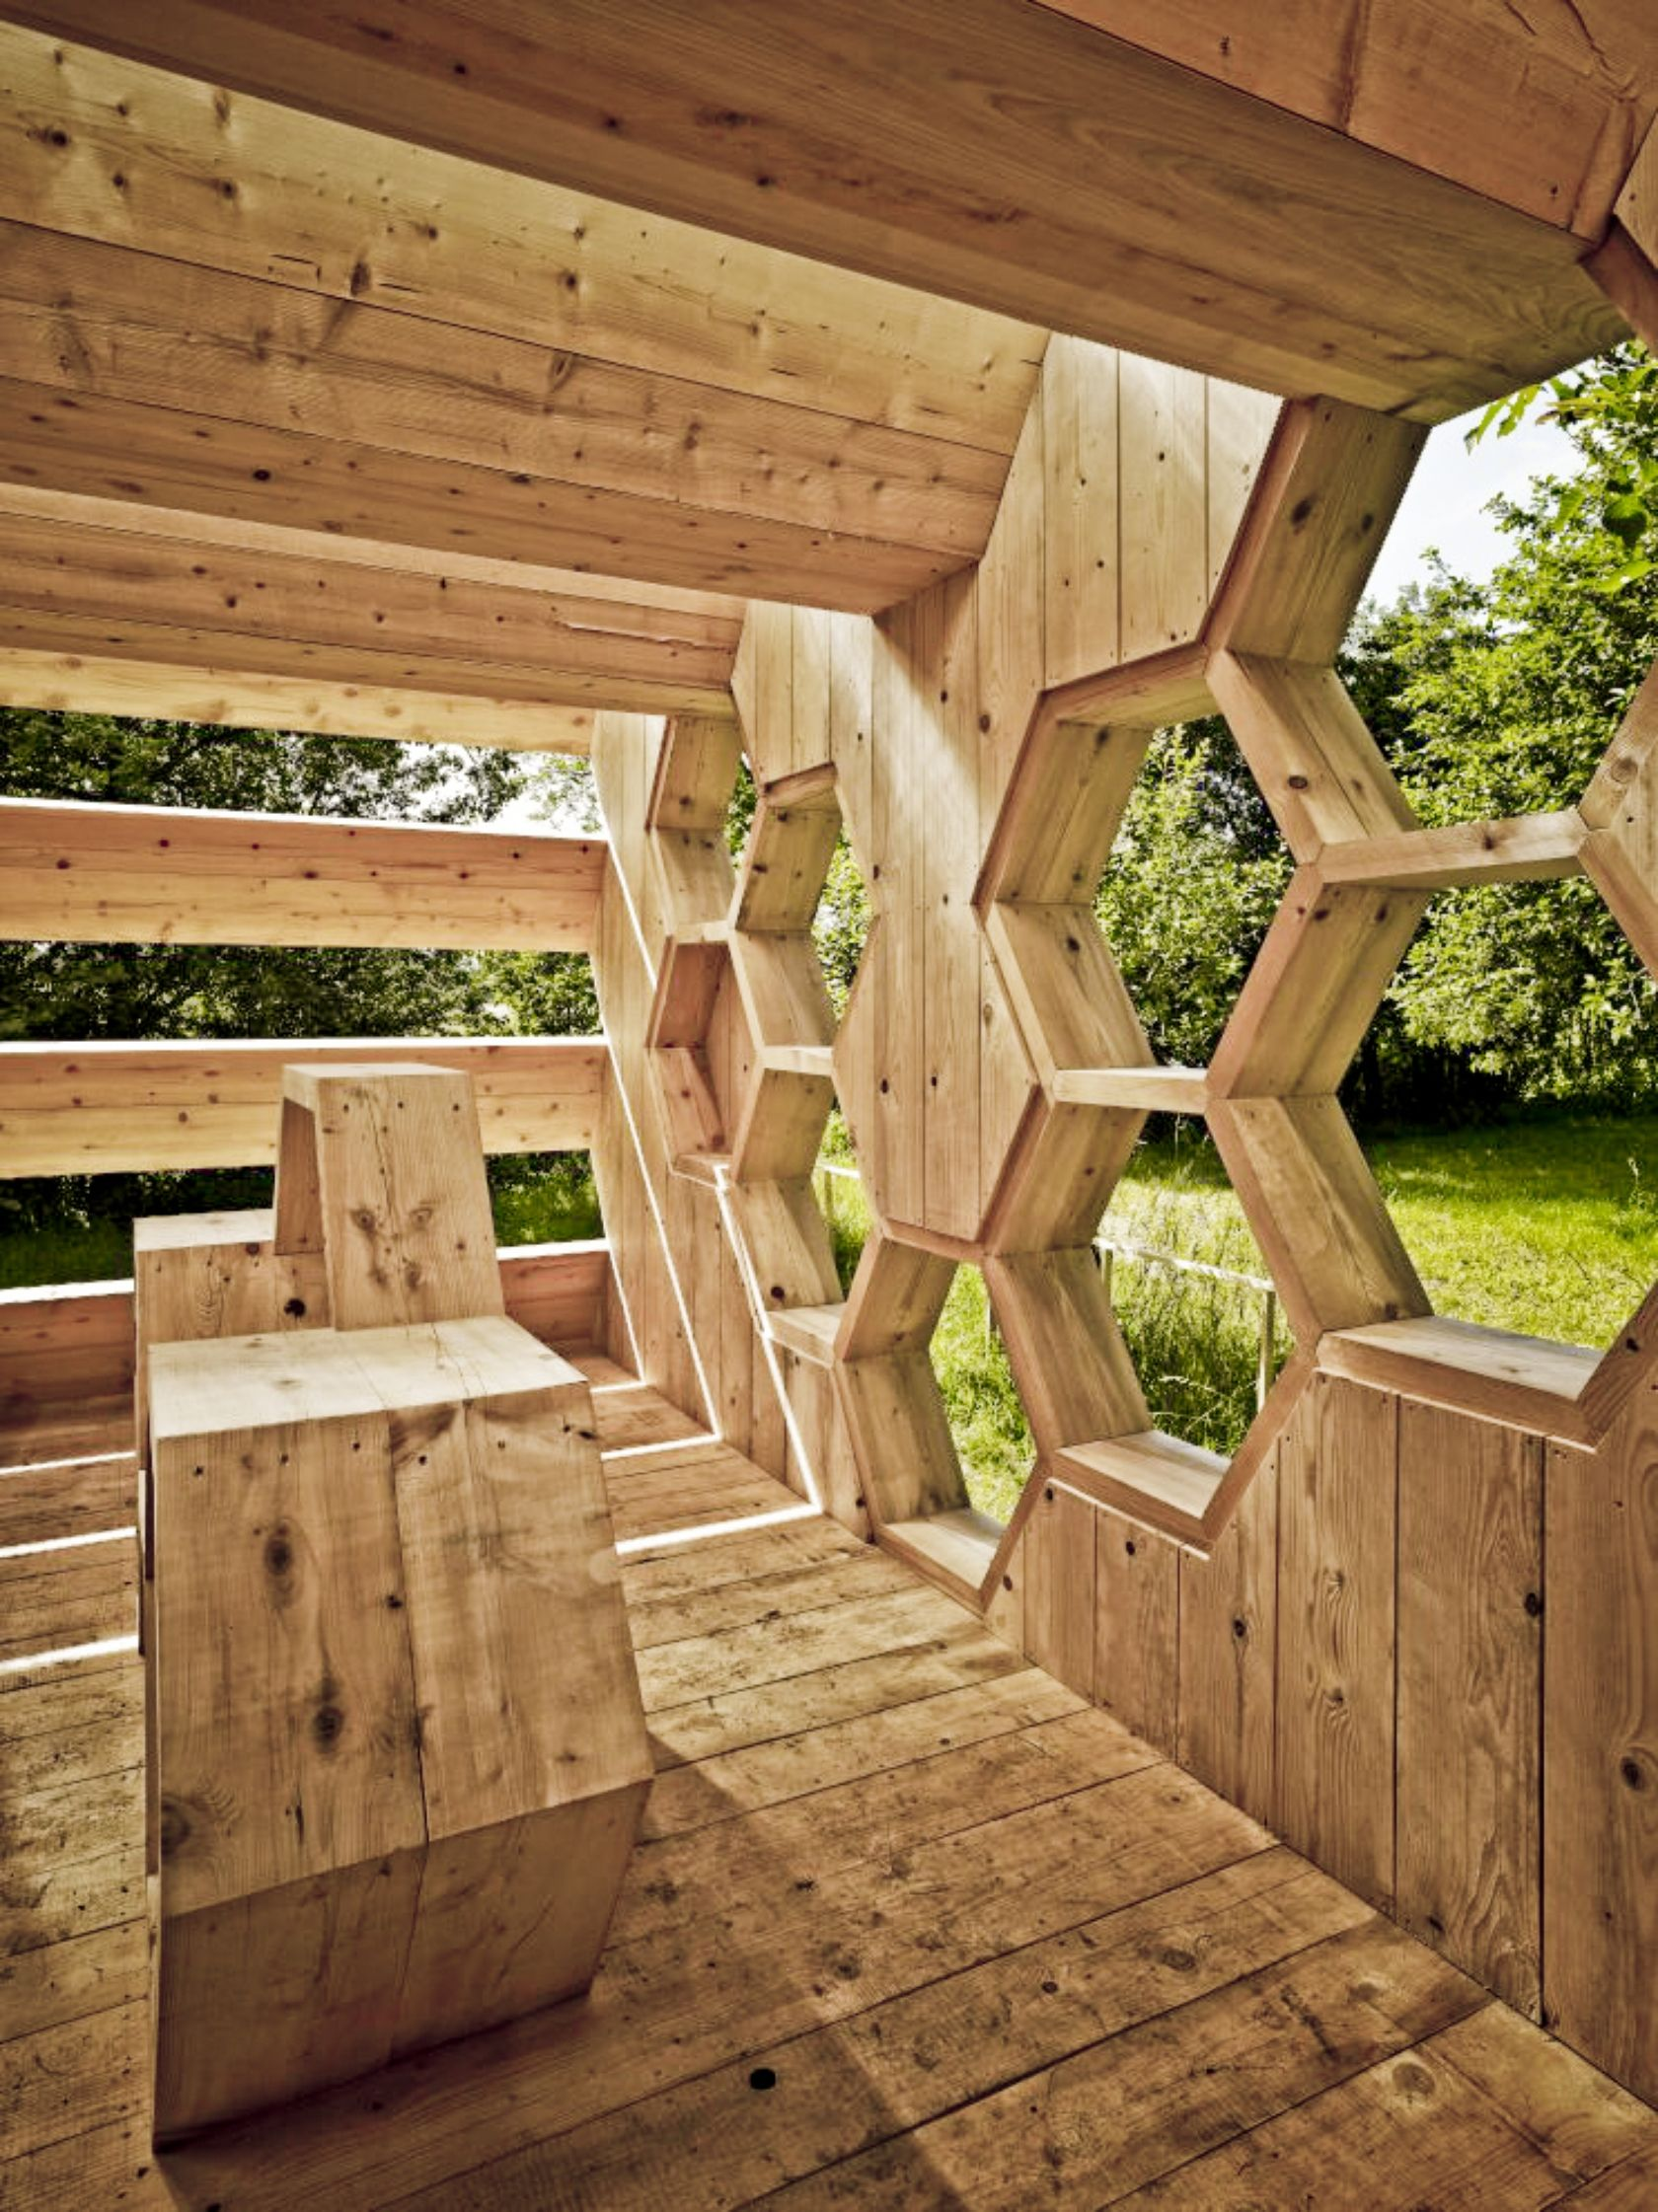 k-abeilles hotel for bees | nature-based play | pinterest | hotels, Gartengerate ideen